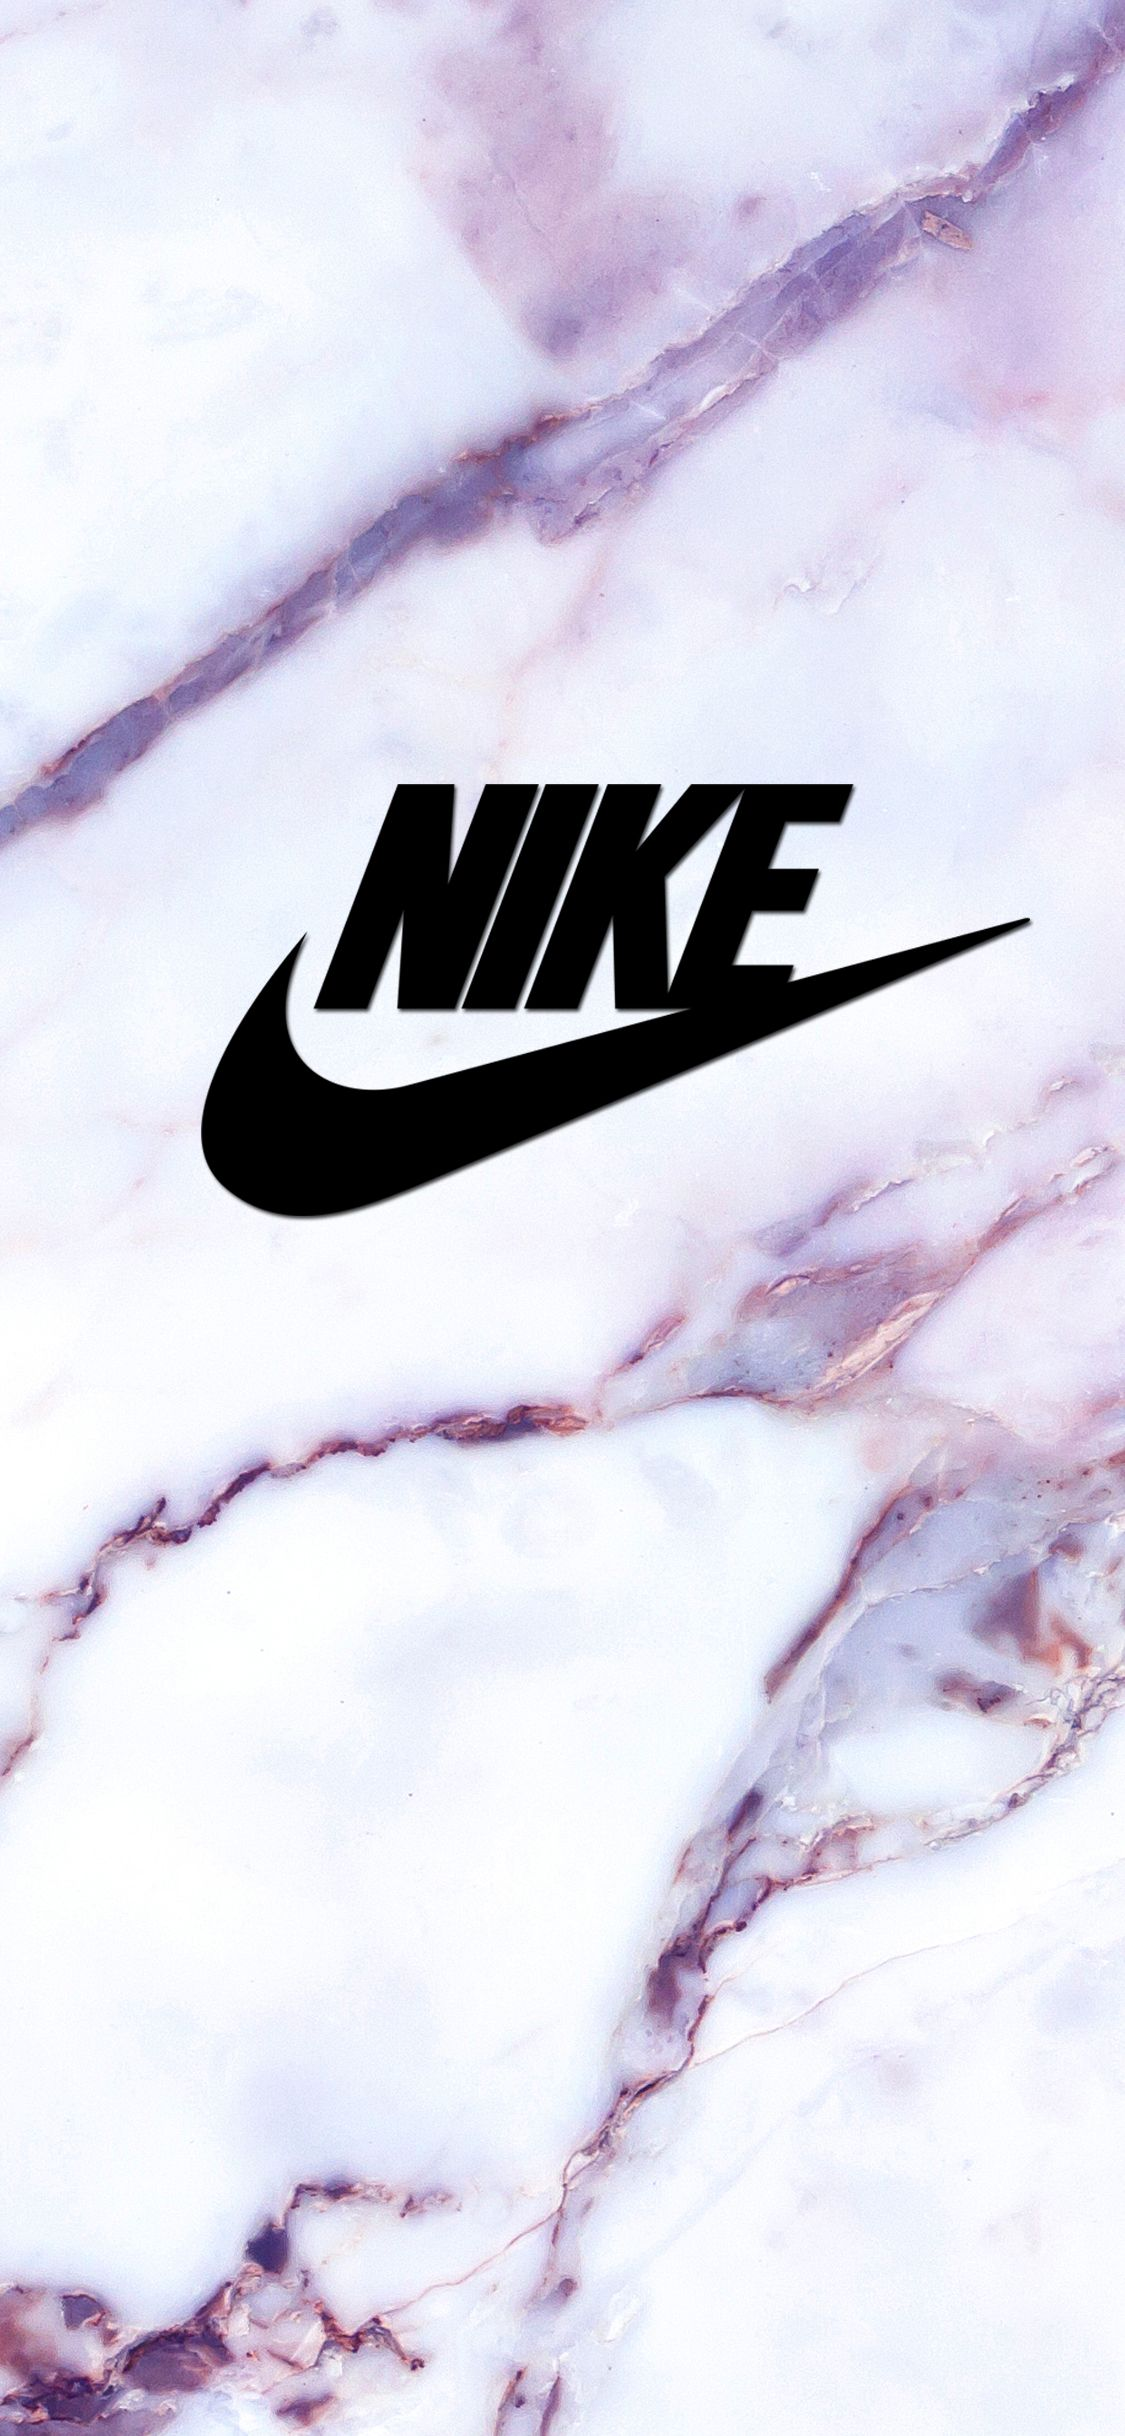 Nike Iphone X Wallpaper You Can Order Iphone Case With This Picture Just Click On Picture Nike Wallpaper Iphone Nike Wallpaper Cool Nike Wallpapers